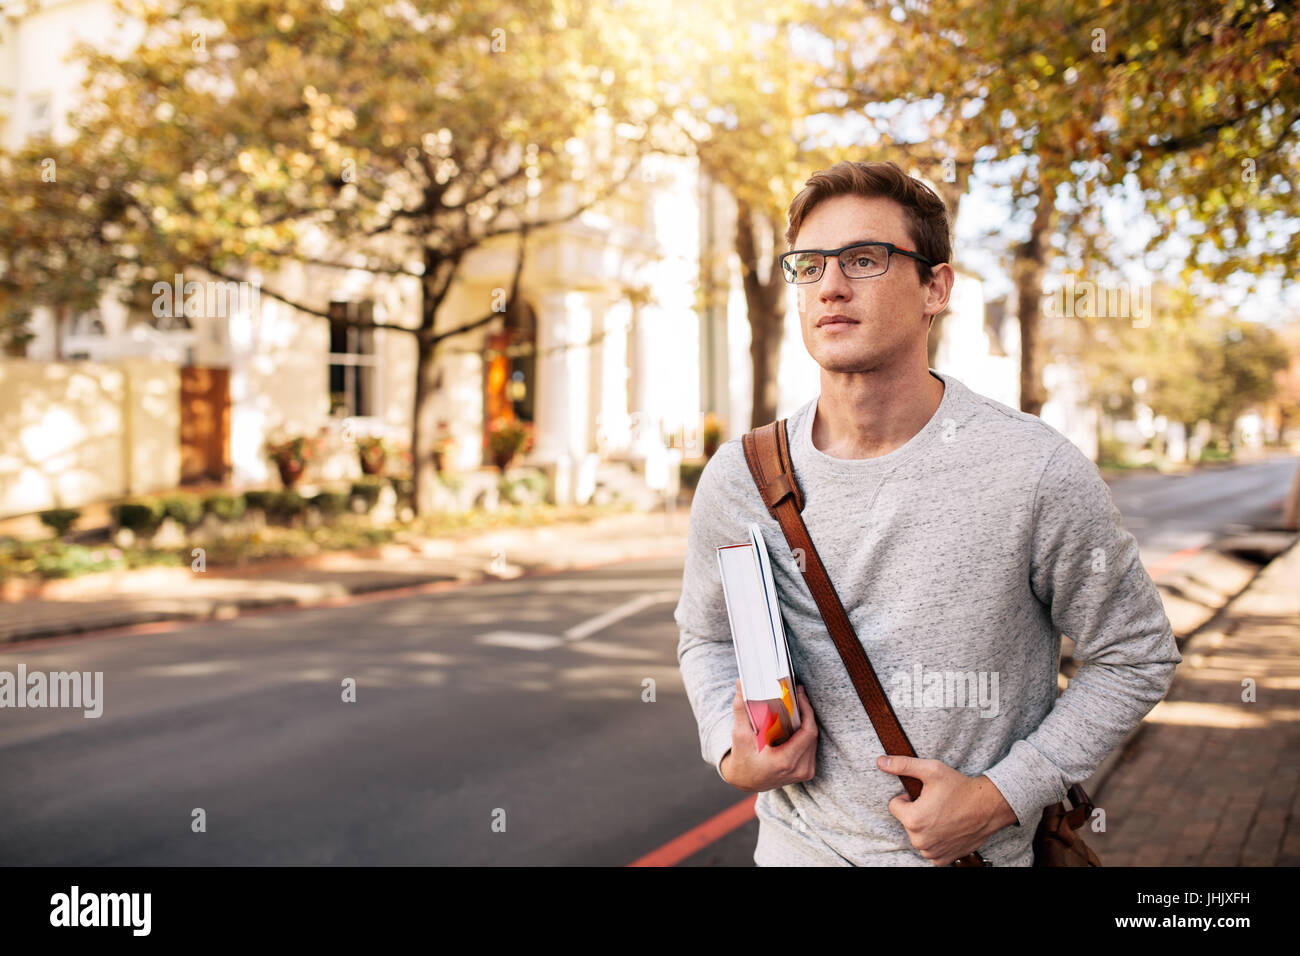 Young caucasian male student with book outside on the road. Handsome young man going to college. - Stock Image